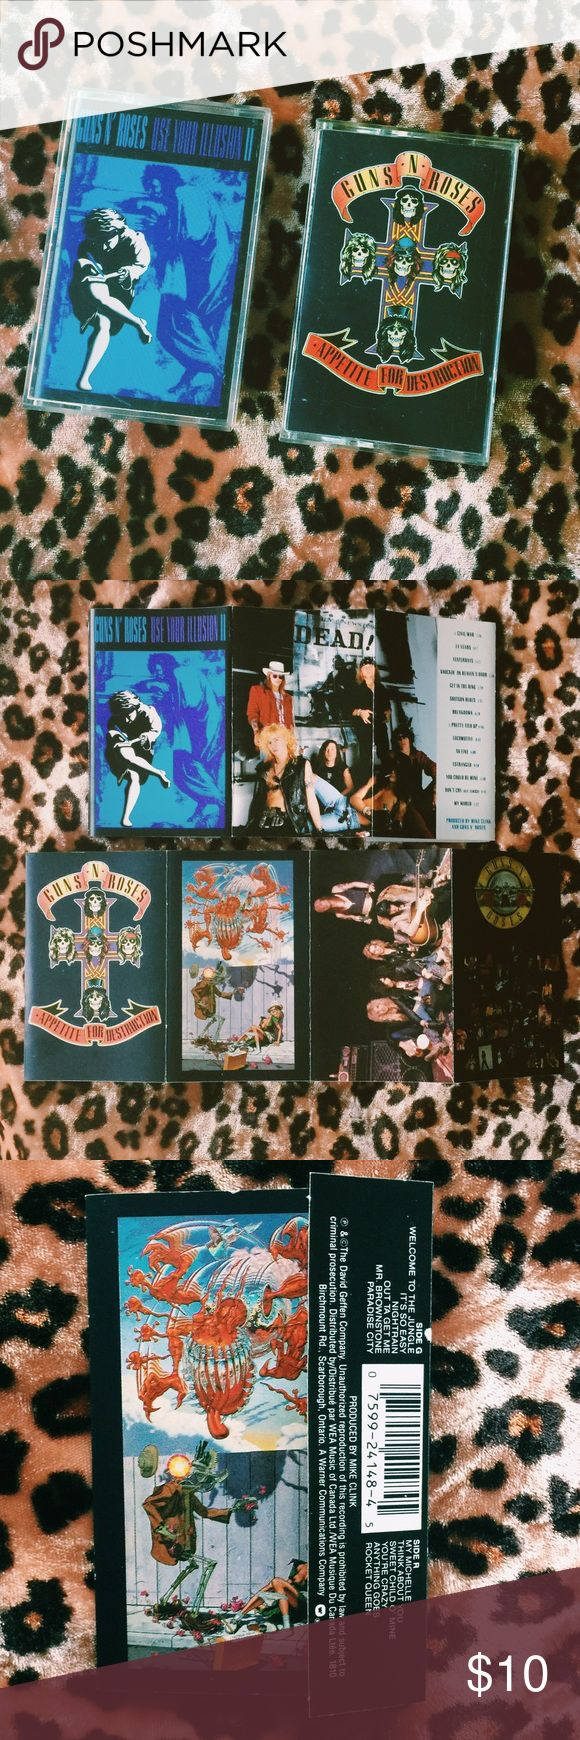 ᴠɪɴᴛᴀɢᴇ : cassette tapes Cassette info ⇝   These cassettes are best for bundling because of the shipping cost.   If you don't have tape deck- go to your local thrift store, pick one up, and start your tape cassette collection. It's worth it ✌🏻  Guns N' Roses: Appetite for Destruction  * Griffins Cassette  * Canadian Product  * Dolby HX Pro  * Circa 1987   Guns N' Roses: Use Your Illusion Ⅱ  * Geffens Cassette * Lyrics printed on foldout  * Canadian Product  * Dolby HX Pro * Circa 1991…